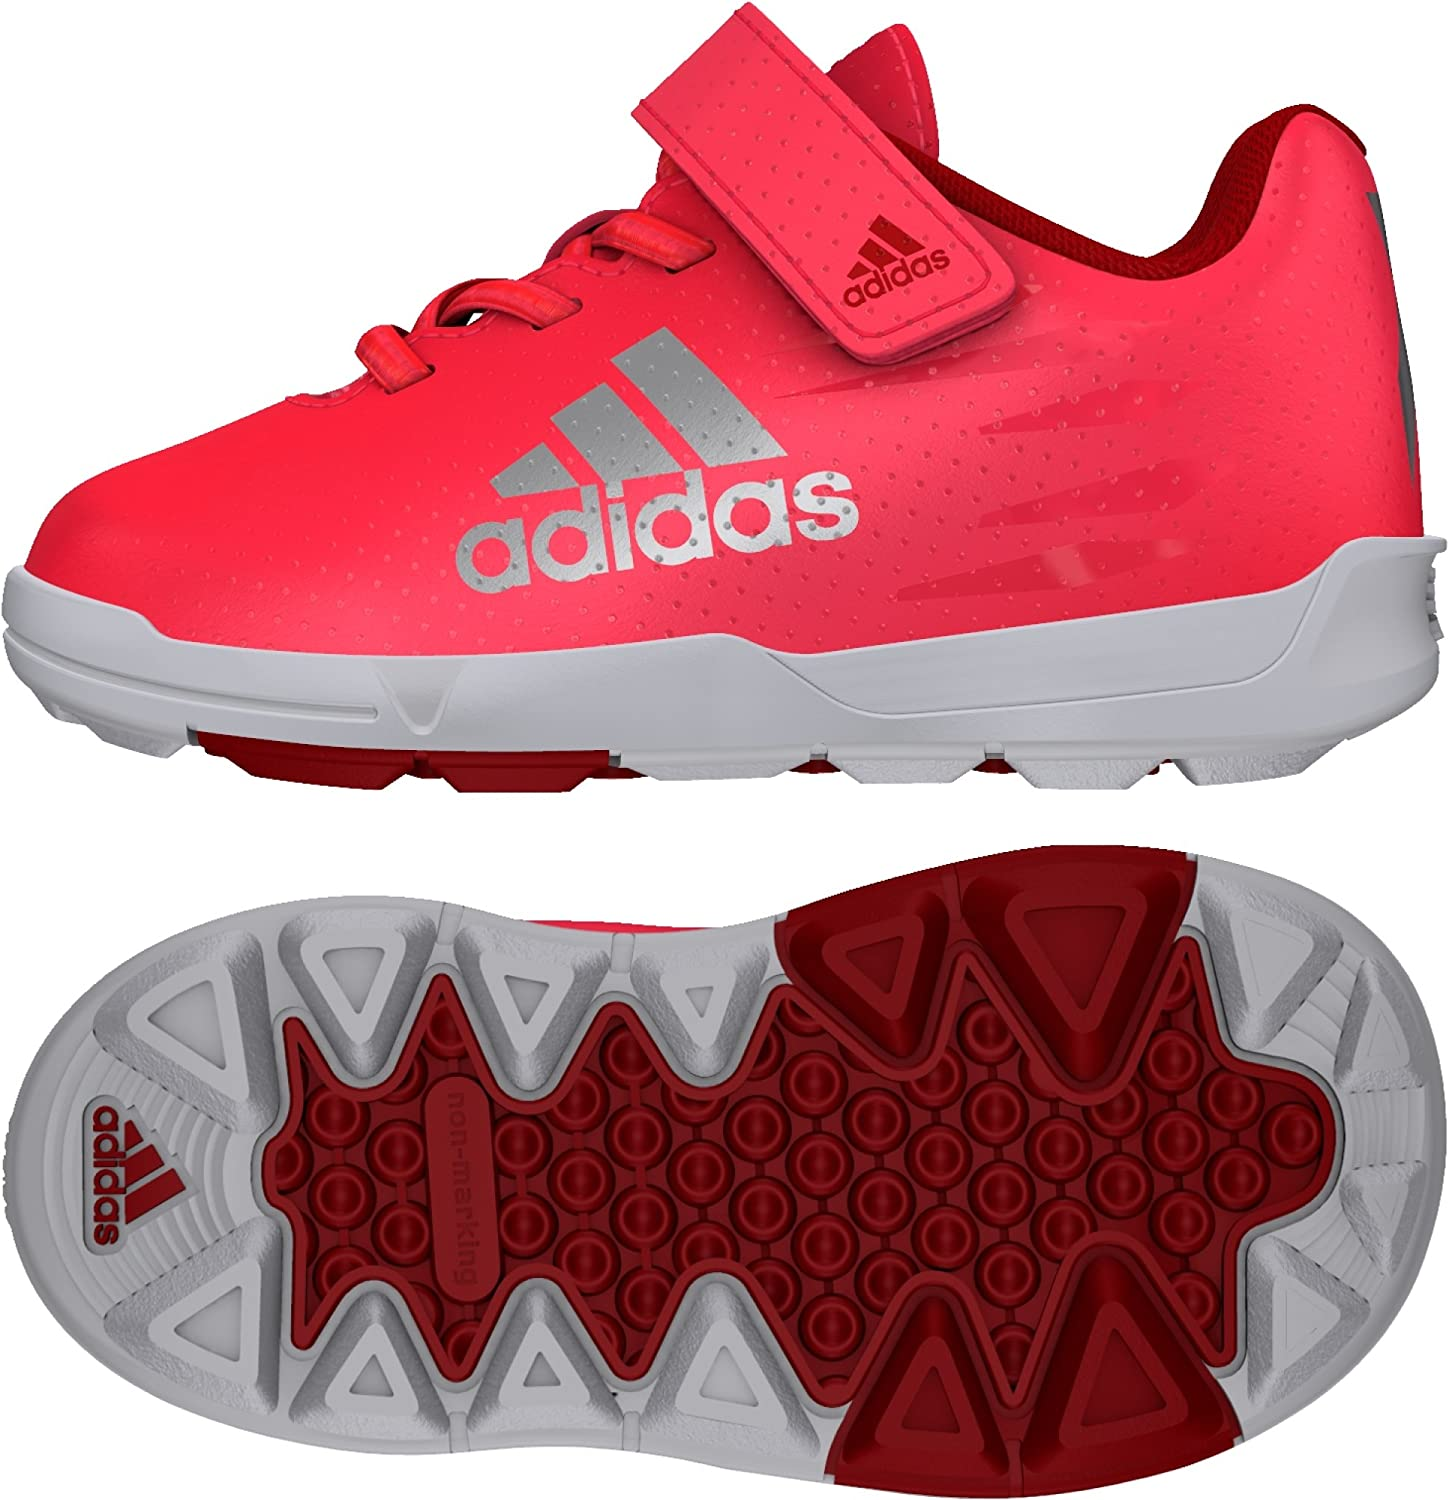 adidas FB X Infant, Chaussures de Football Mixte Bébé, Rojo